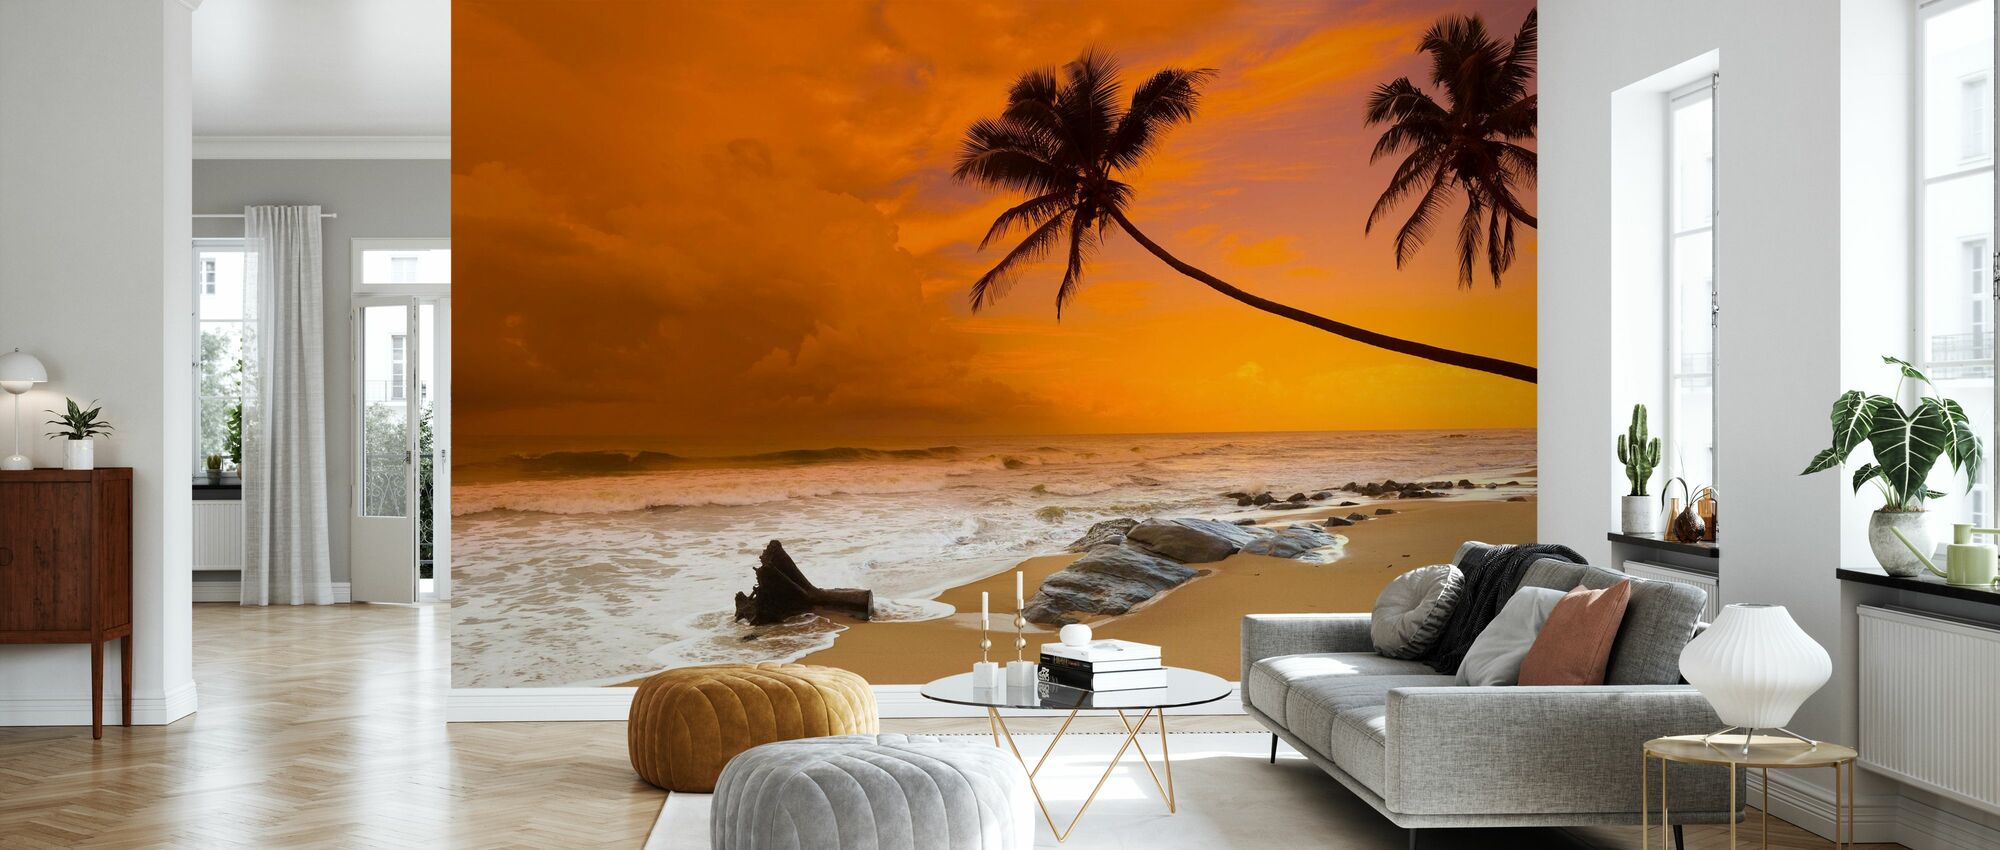 Sunset over the Sea - Wallpaper - Living Room